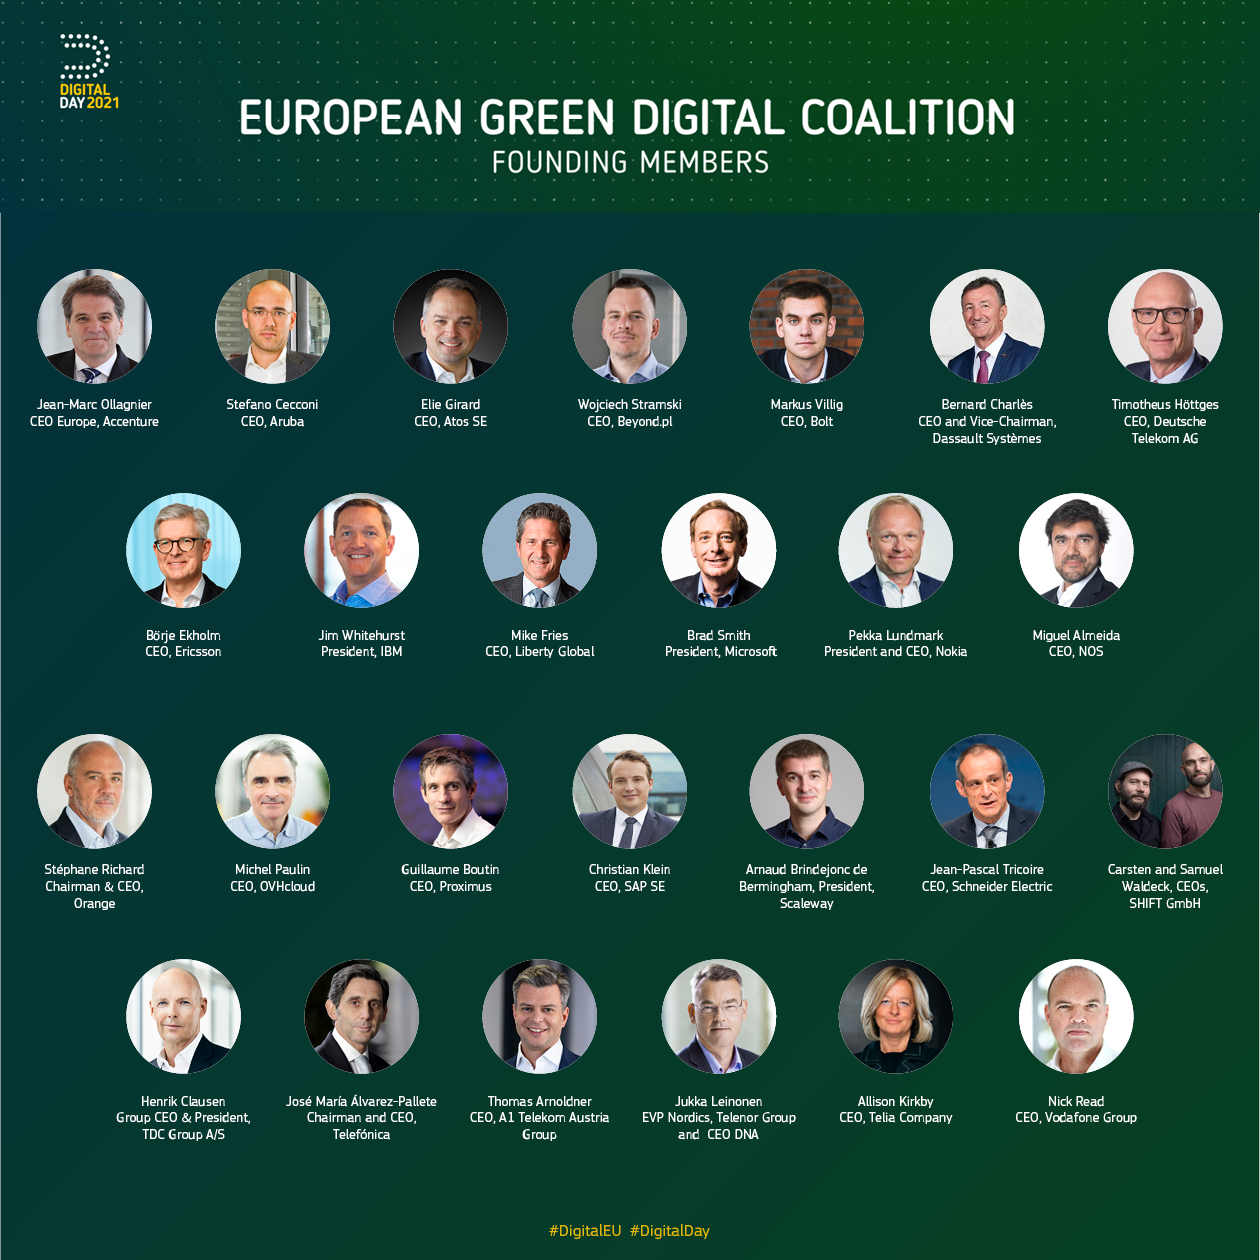 Graphic with pictures of all CEO signatories to the EGDC